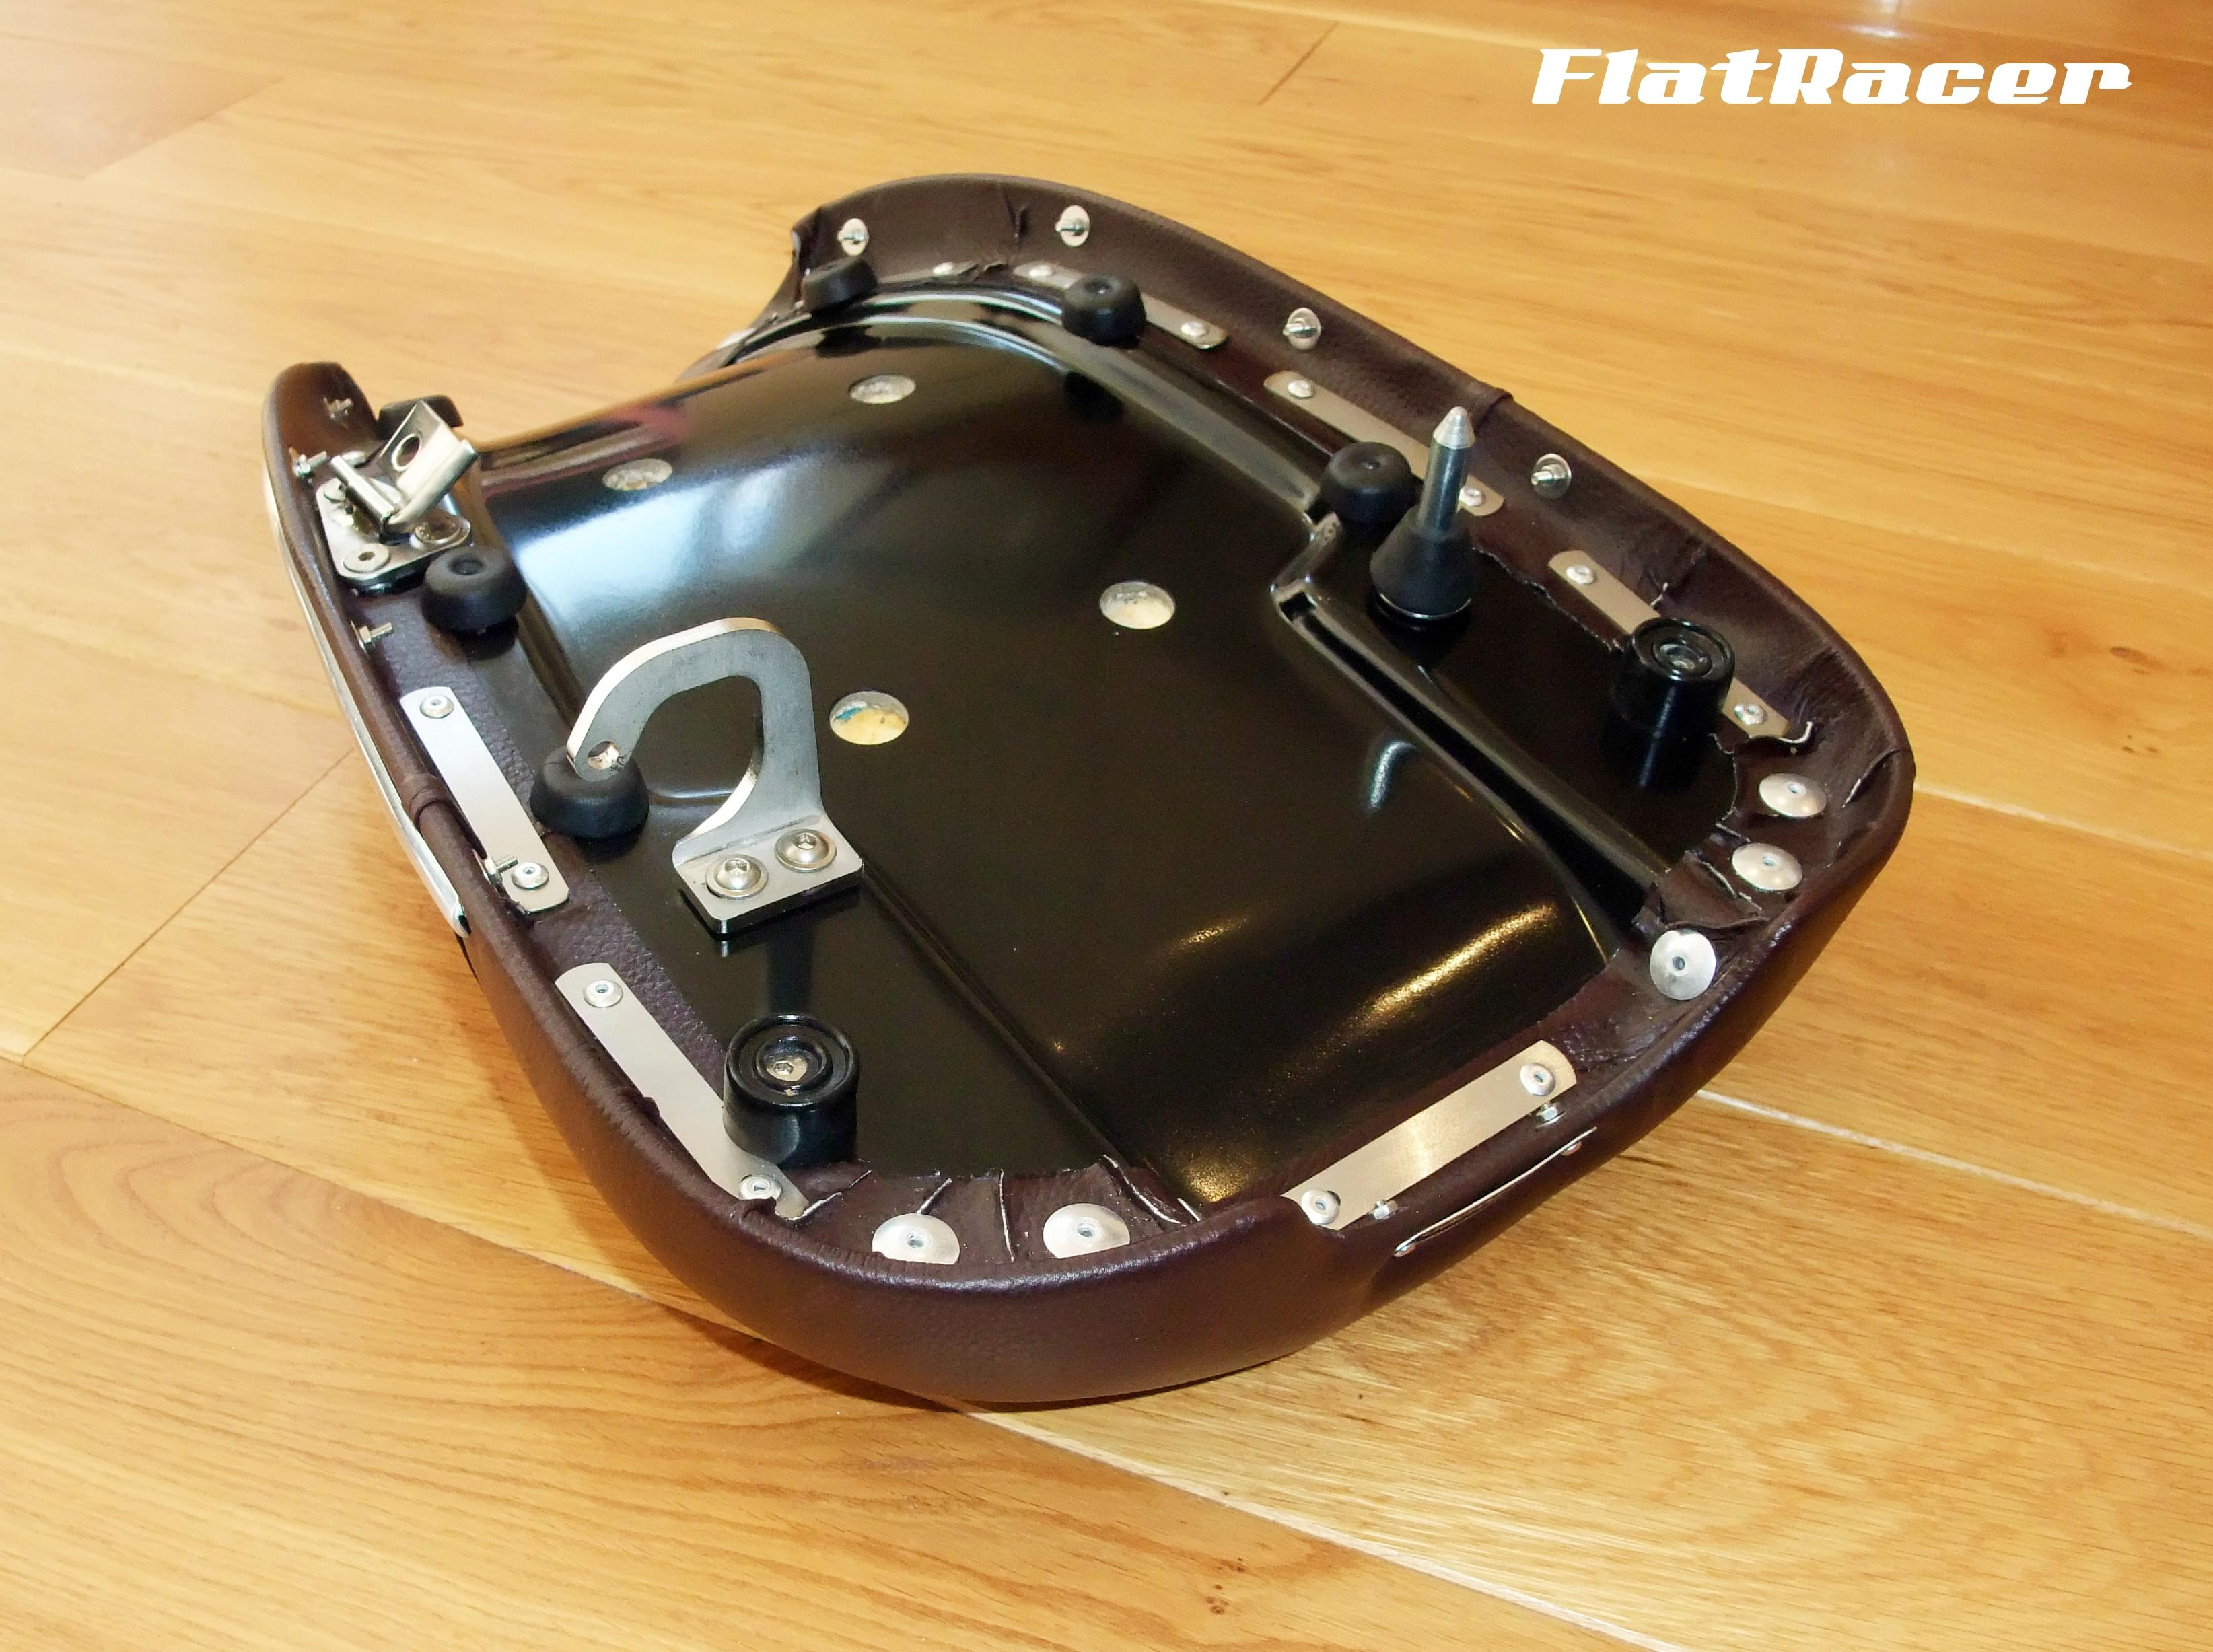 FlatRacer BMW R2v Airhead Boxer /6 Series (73-76) TIC single seat.